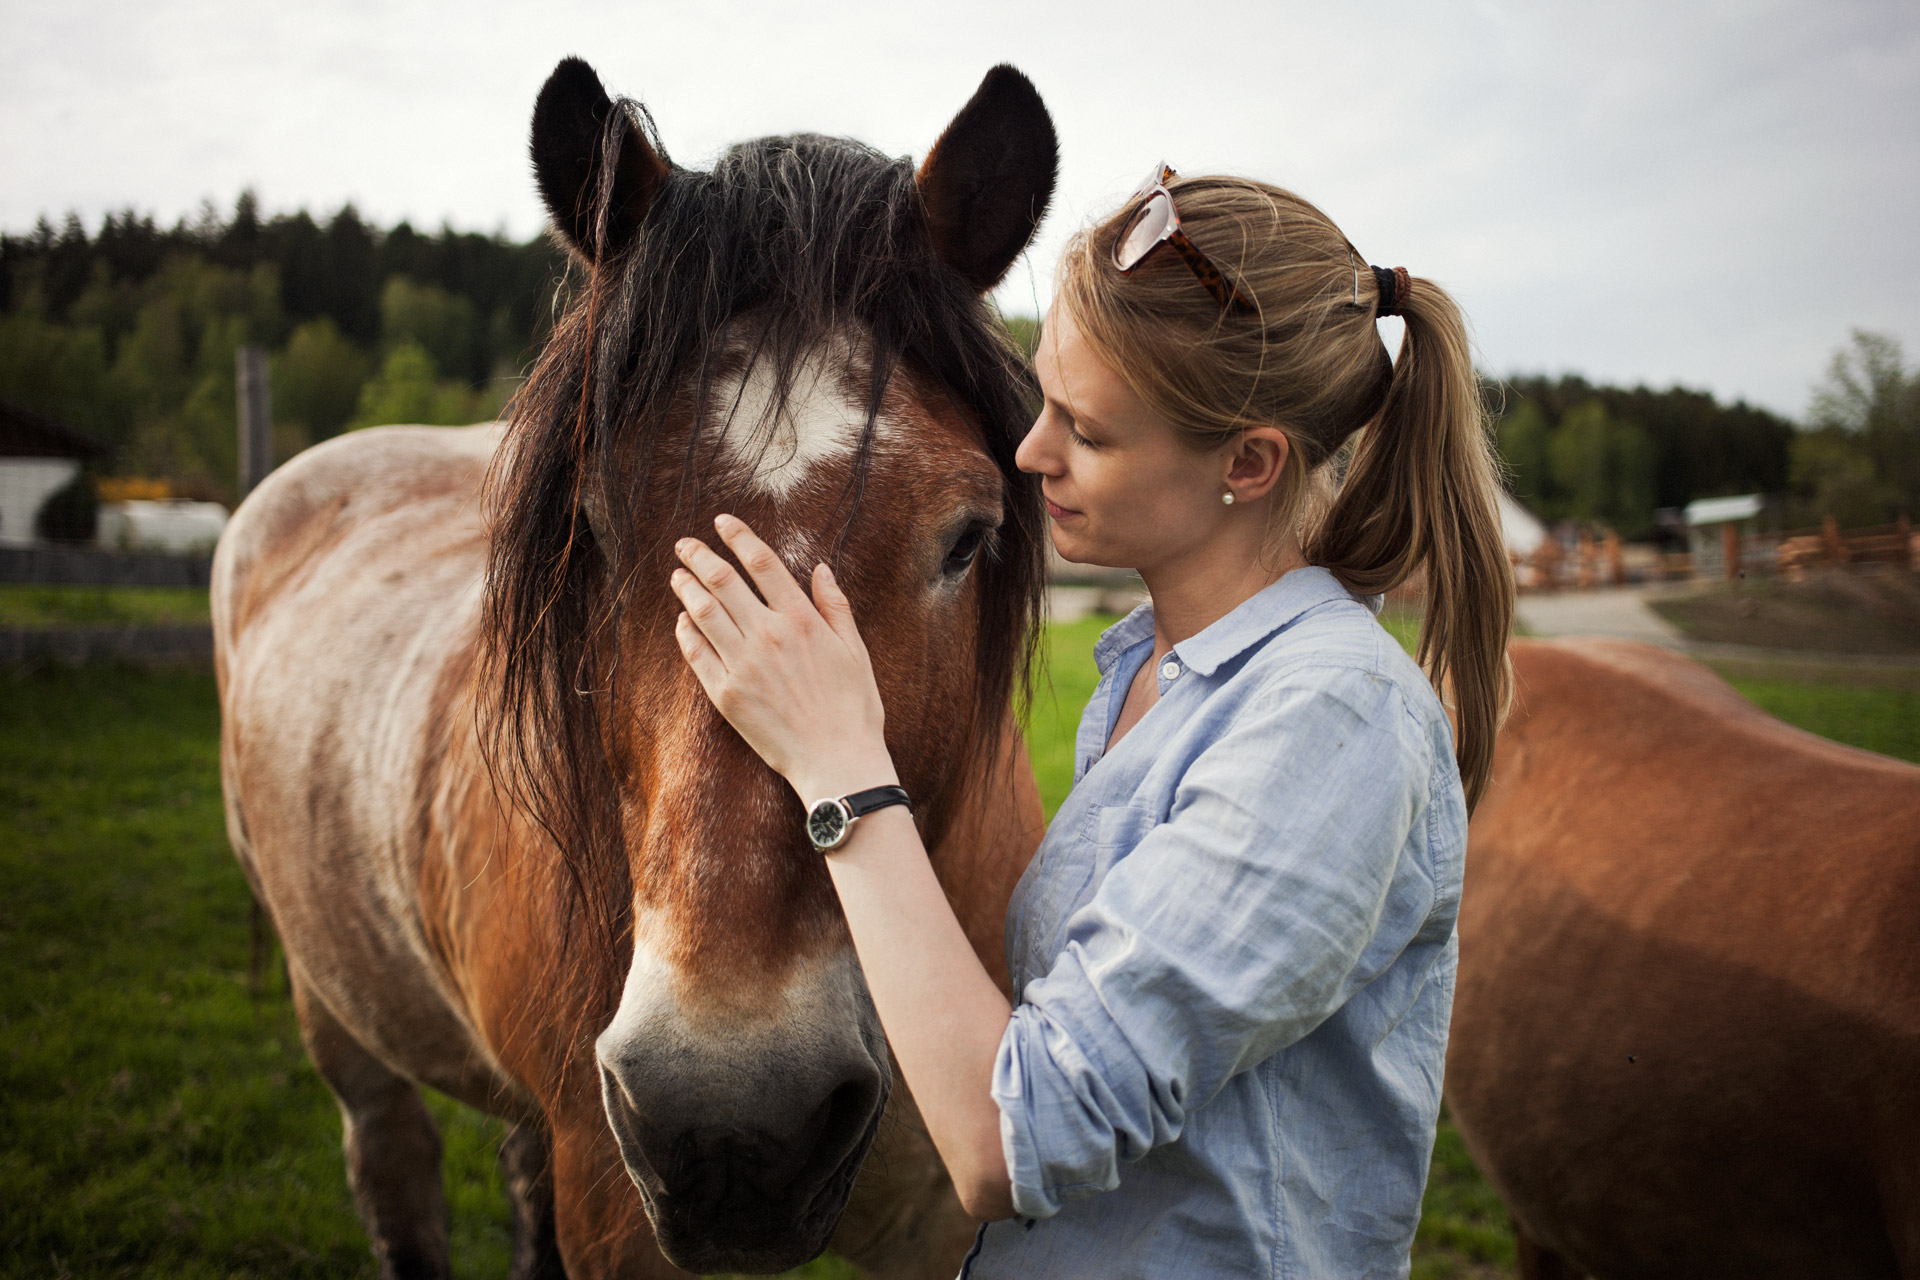 timo-stammberger-photography-animal-sanctuary-pferd-maedchen-nature-horse-erdlingshof-mitgefuehl-woman-compassion